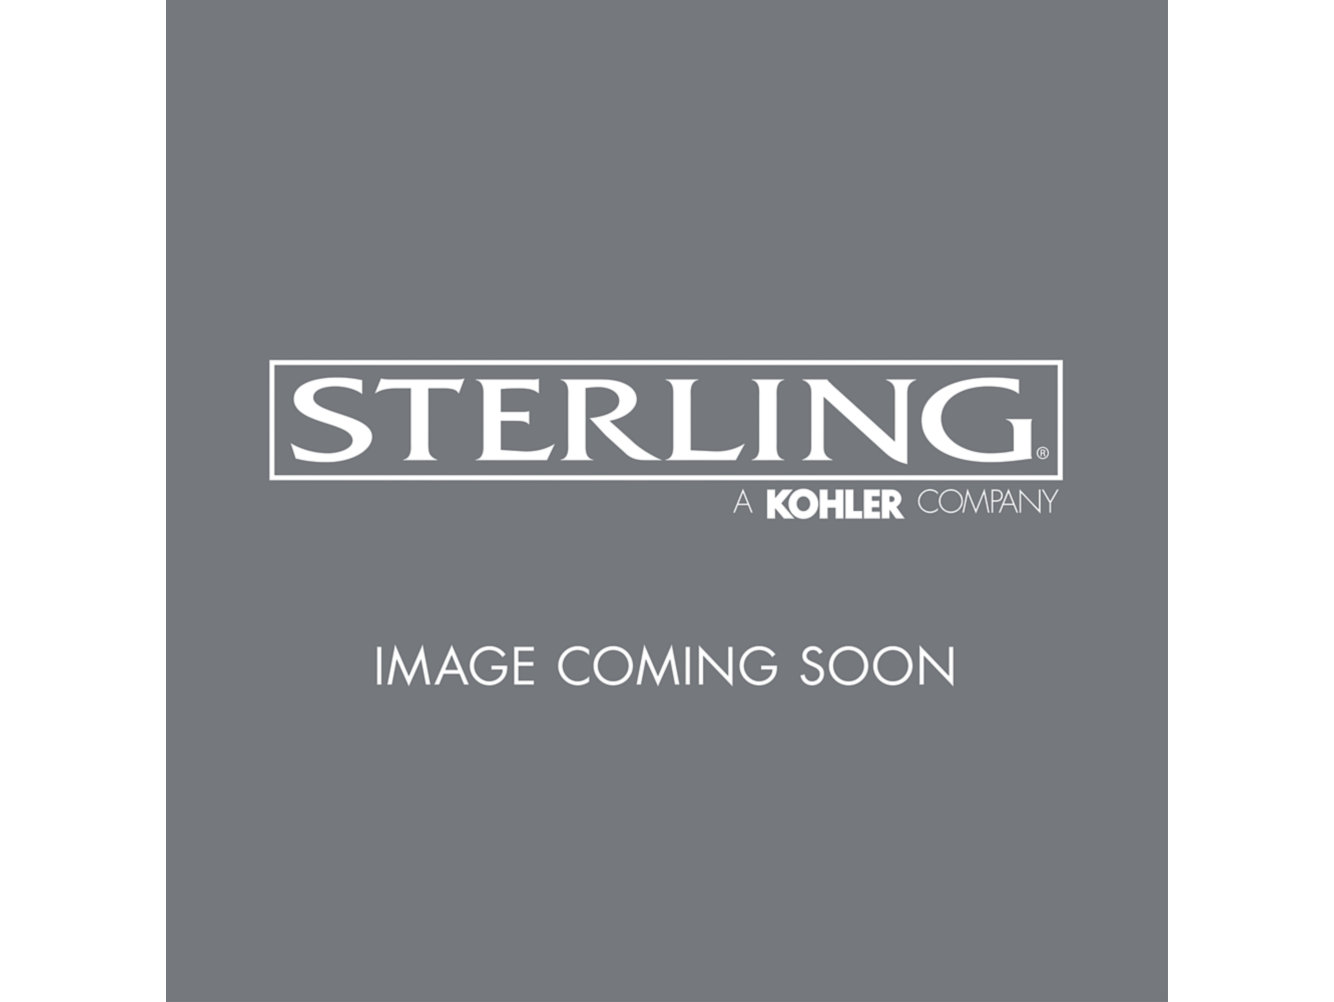 Ludington under mount single bowl kitchen sink with accessories 24 x 18 5 16 x 9 7 16 20023 pc na sterling